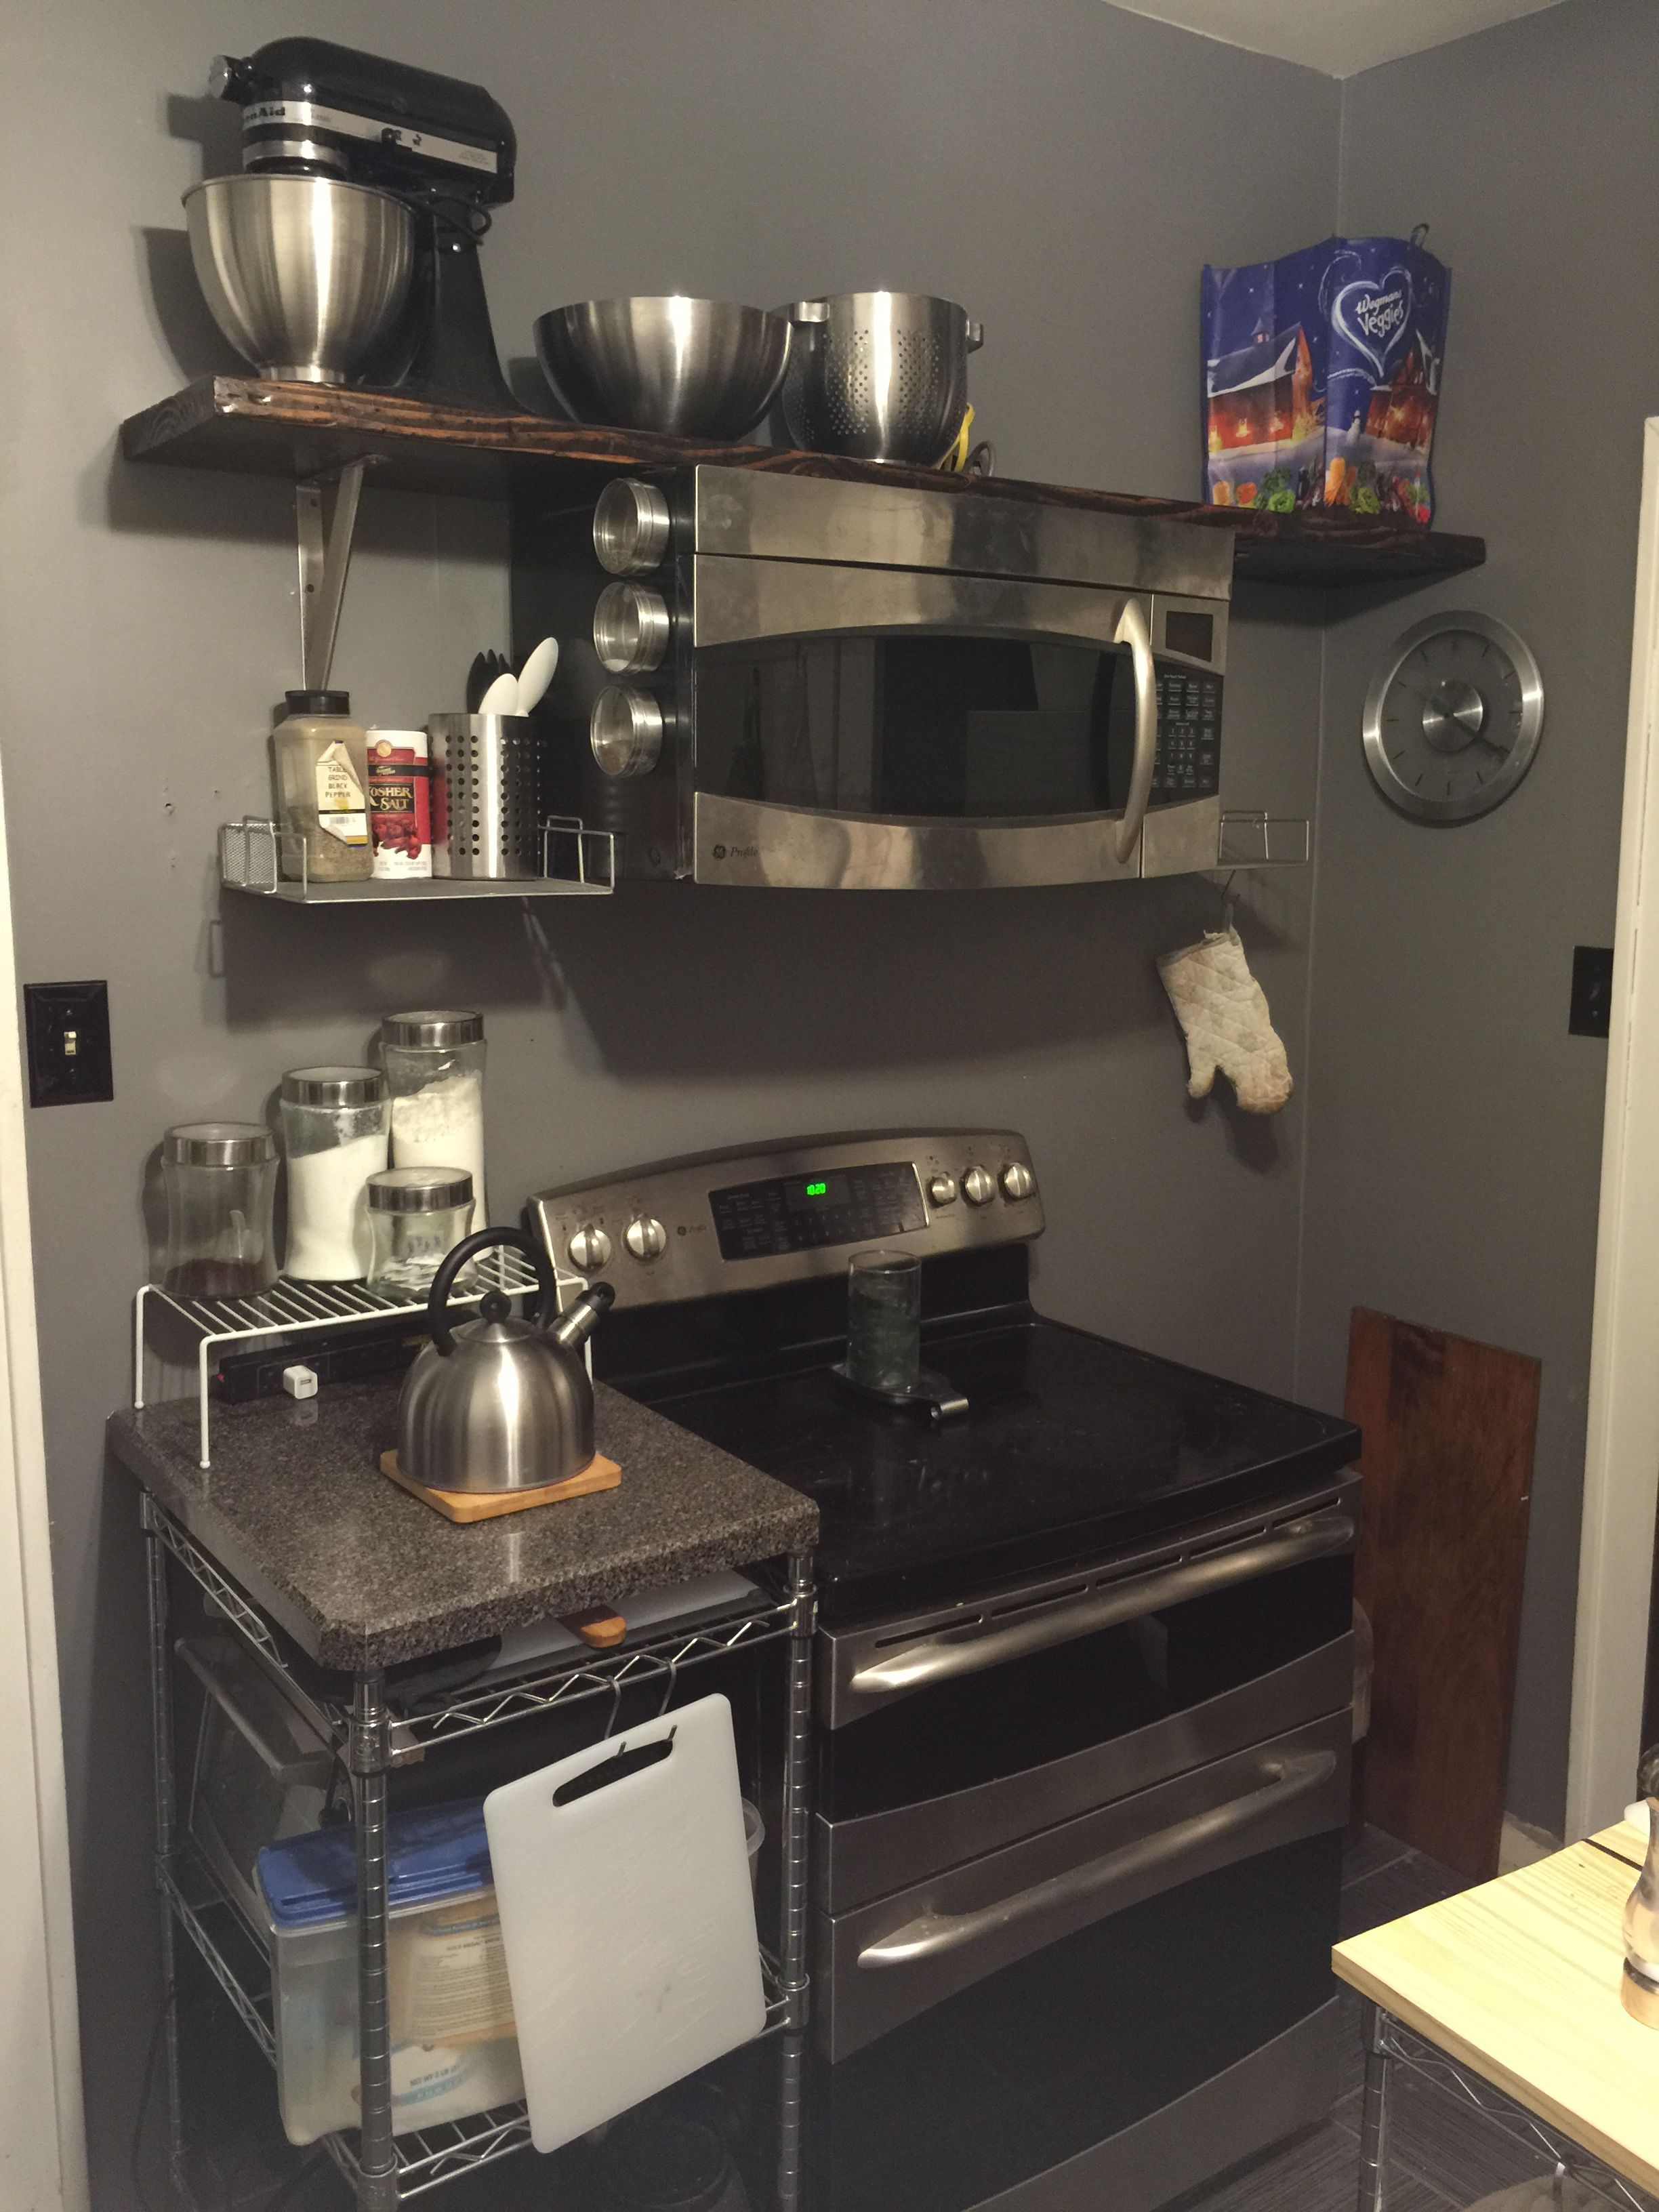 Kitchen Shelves Instead Of Cabinets Open Shelf Instead Of Cupboard Above Stove Microwave